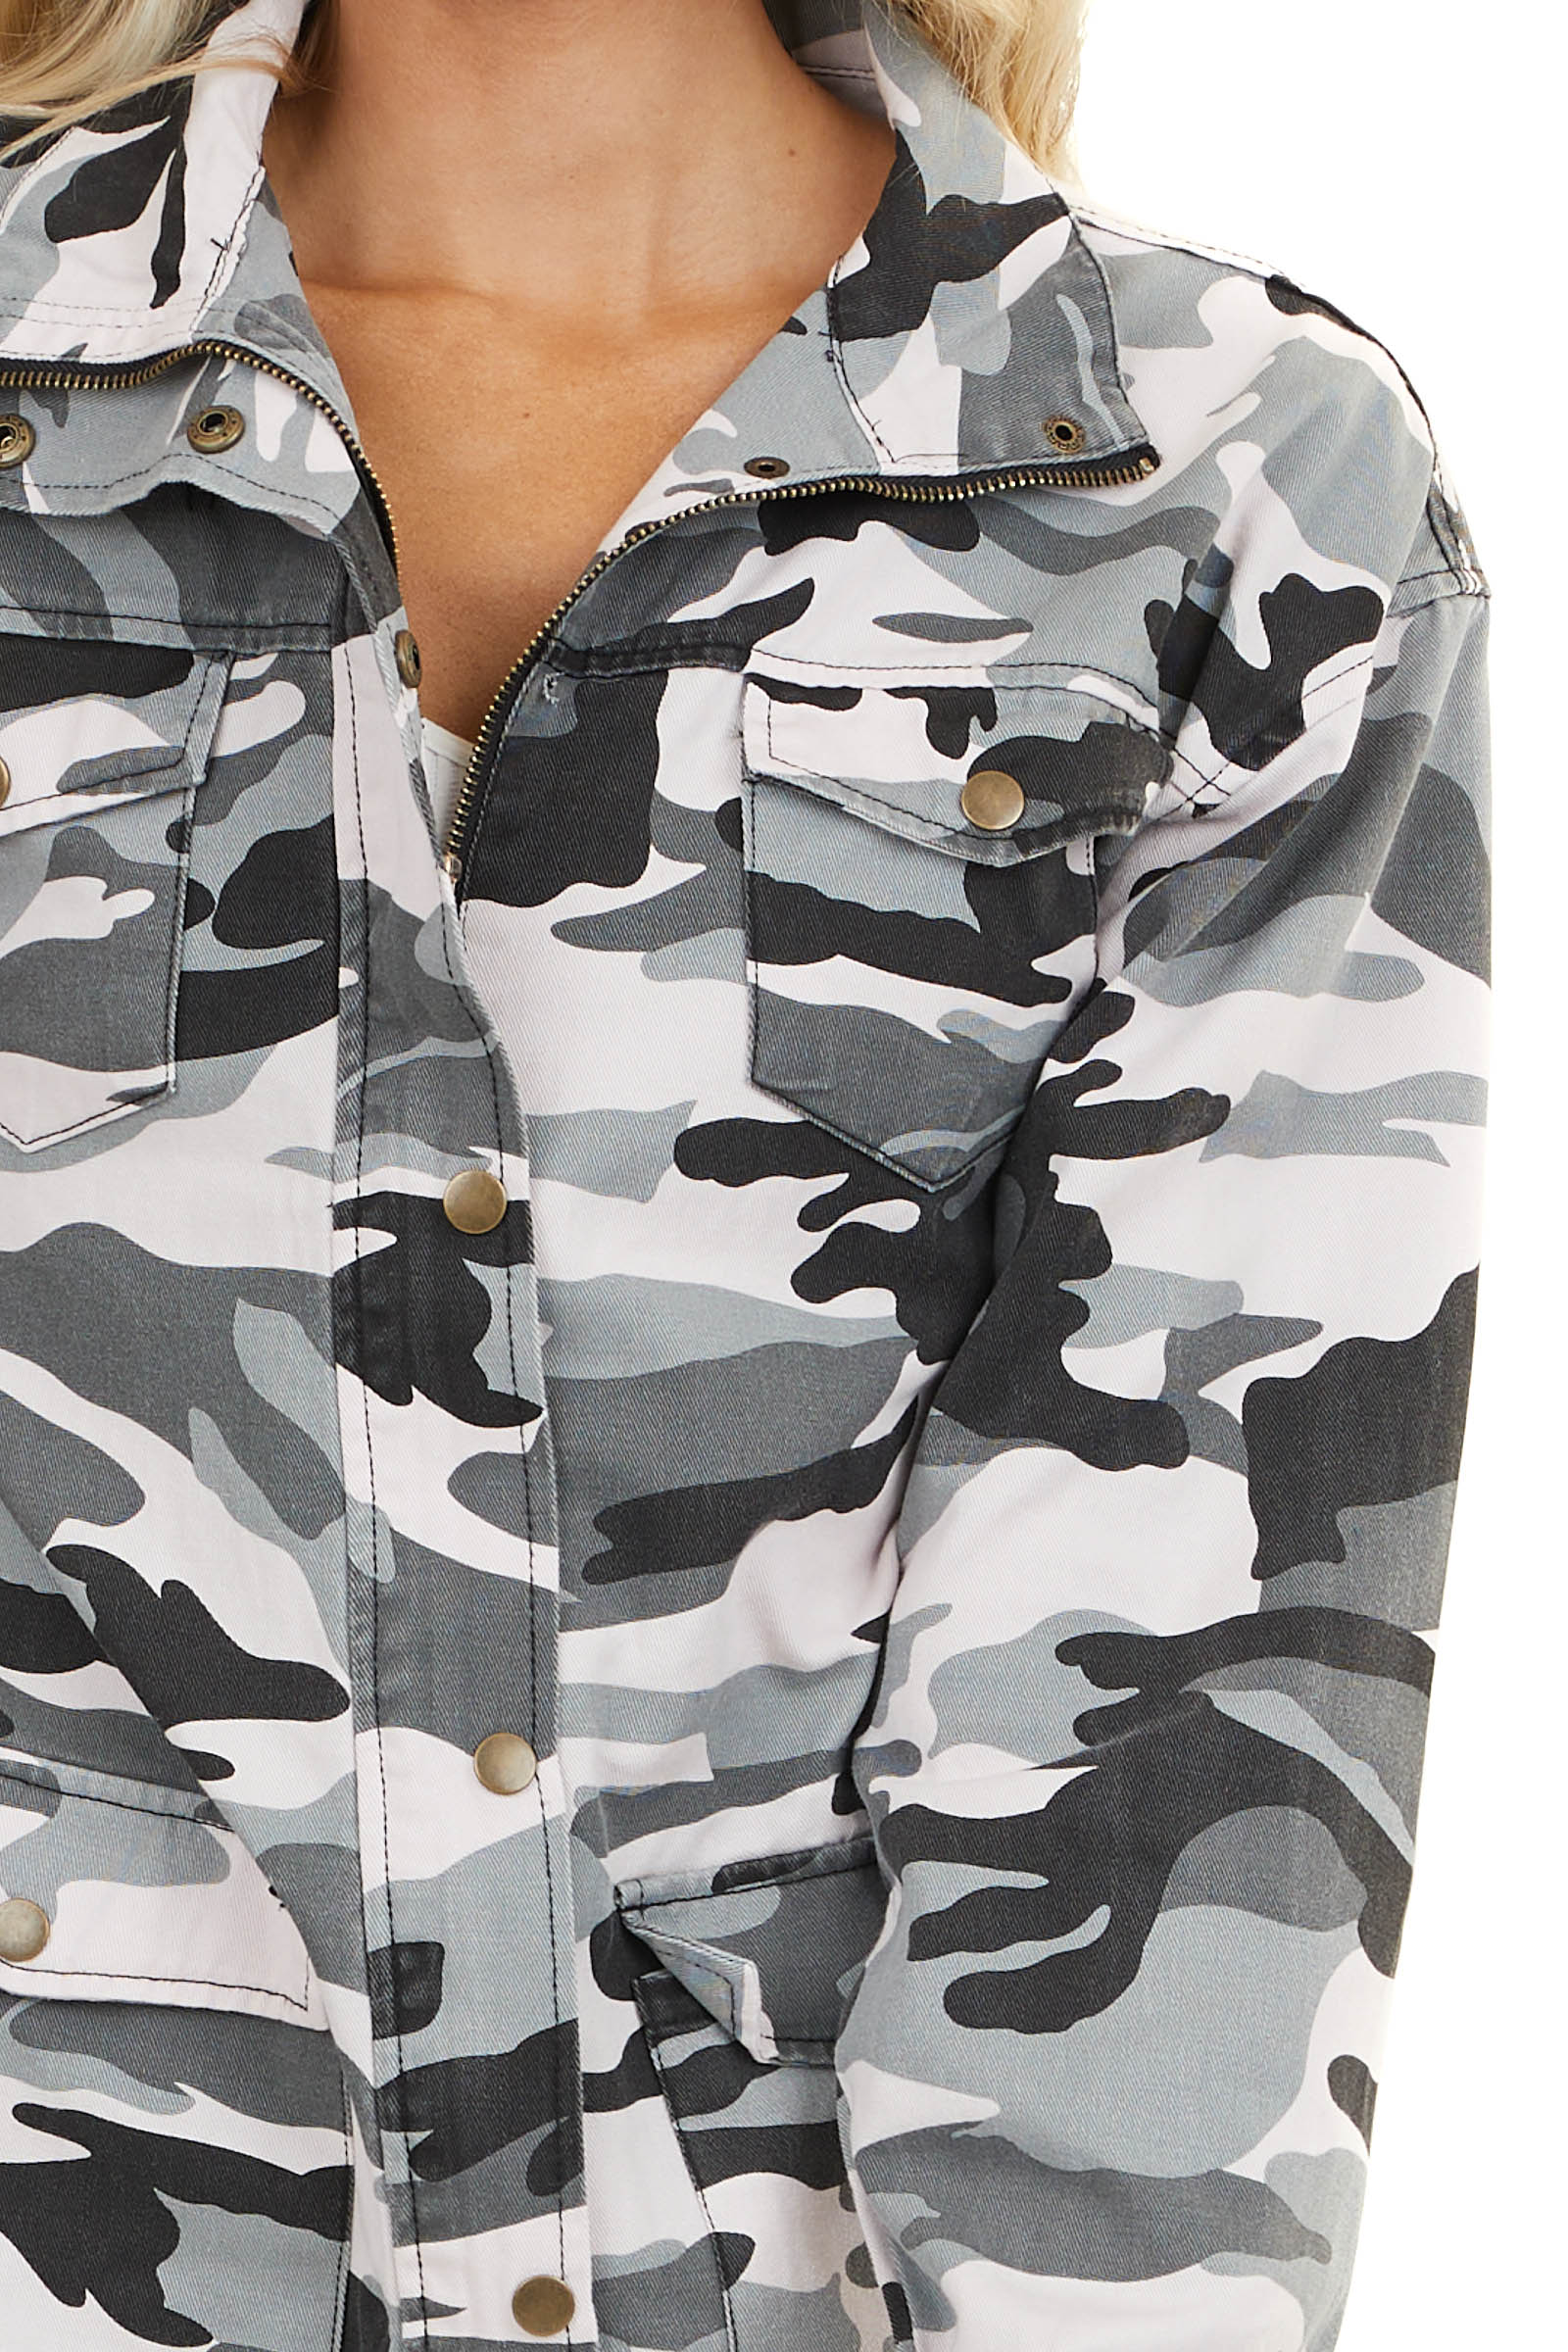 Charcoal Camo Print Long Sleeve Jacket with Button Details